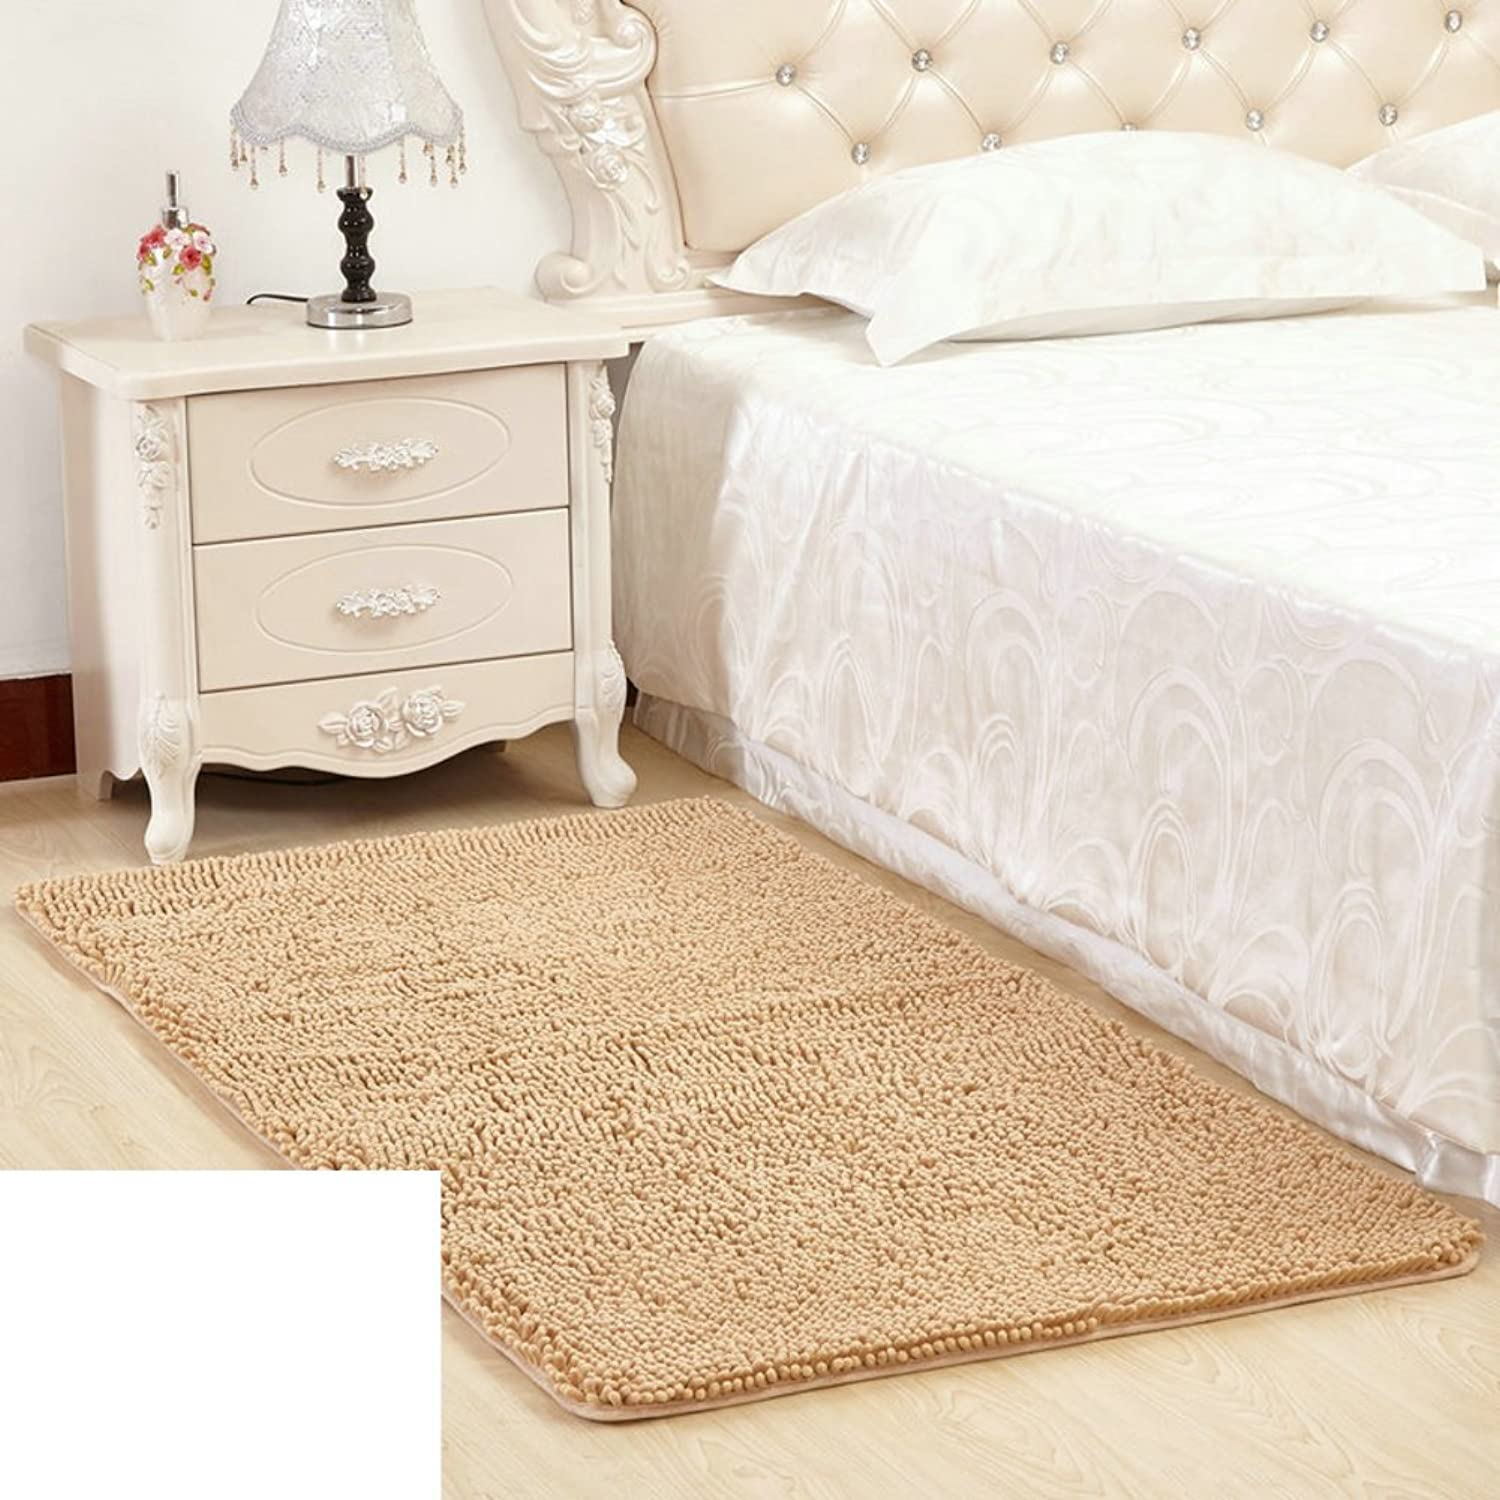 Chenille mat Bedroom Toilet Door mat Foot Pad doormats Bathroom Water-Absorbing Non-Slip mats mats at The Door-J 50x80cm(20x31inch)